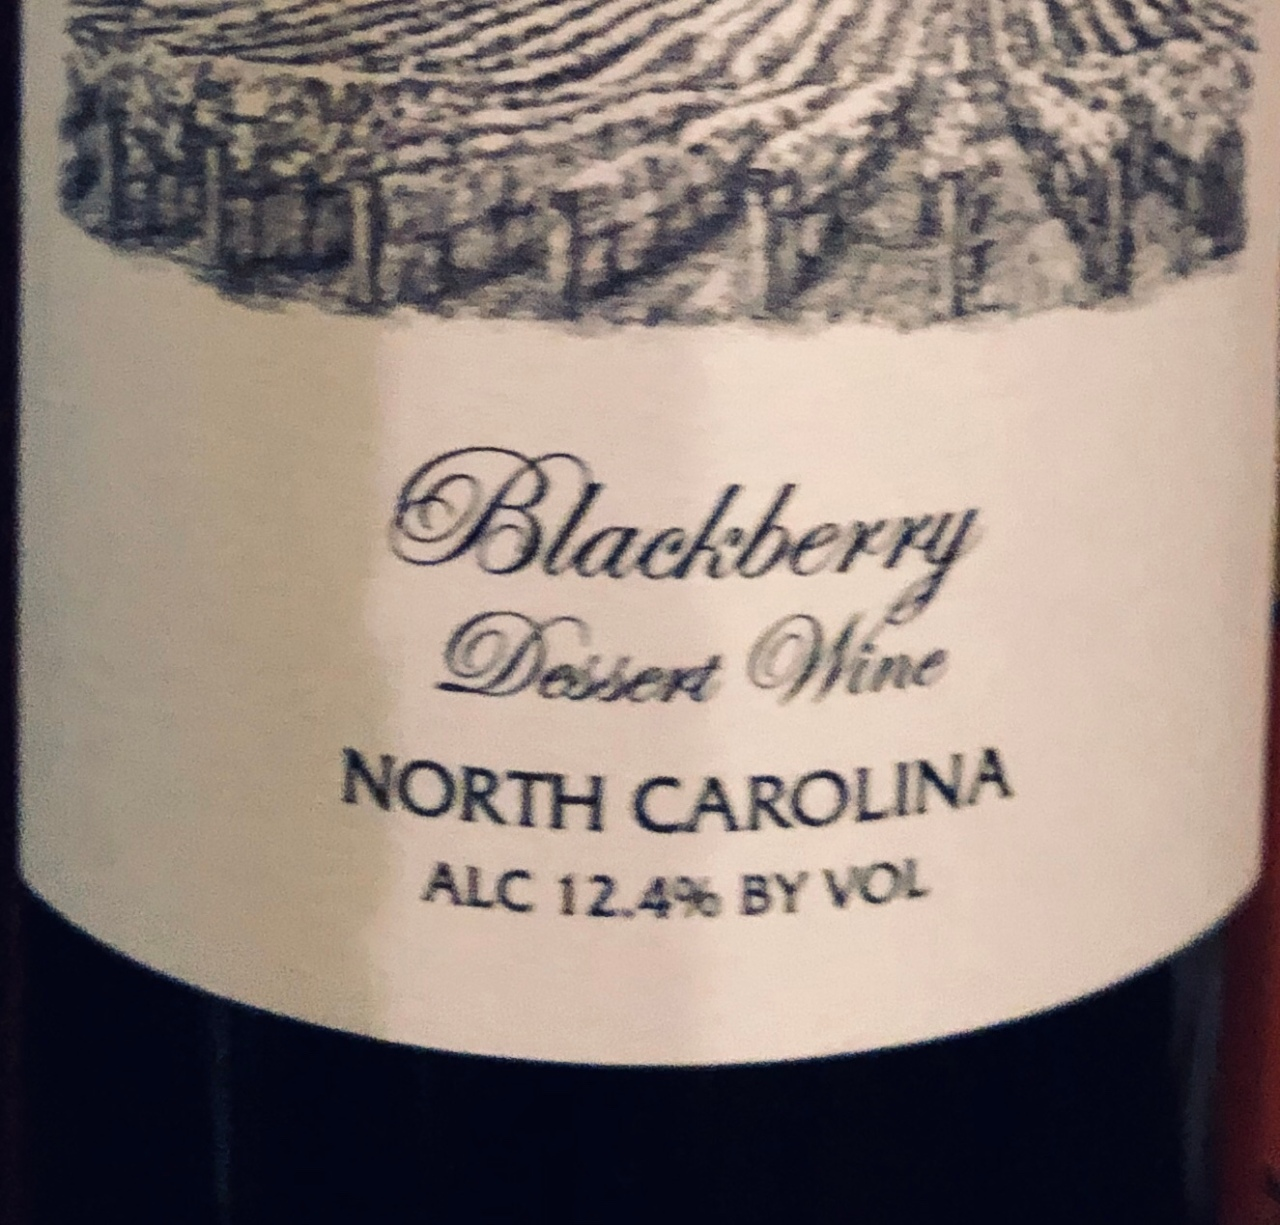 Blackberry Desert Wine – Parker-Binns Vineyard